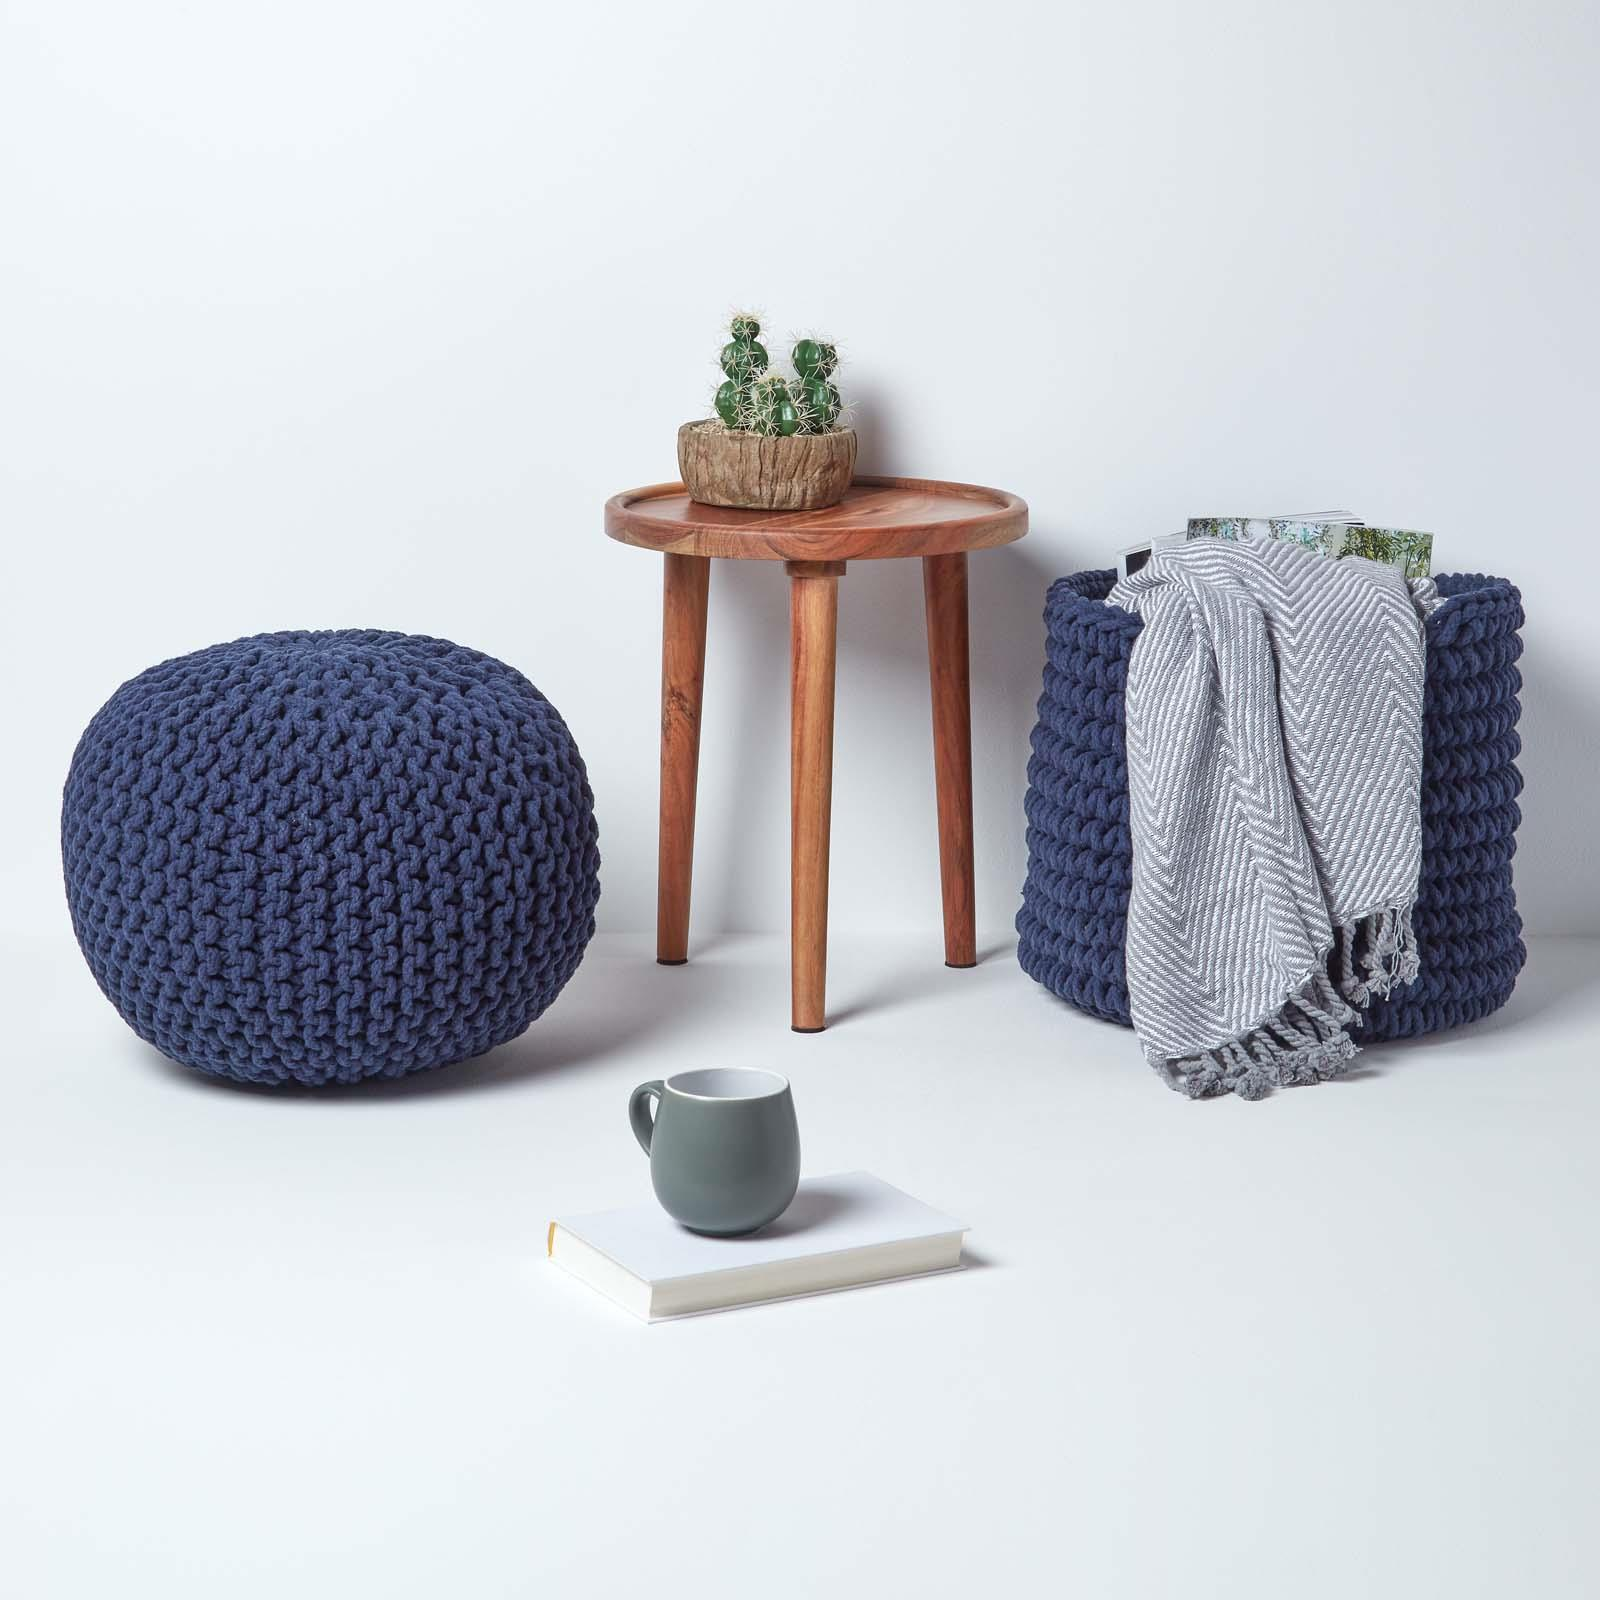 Hand-Knitted-100-Cotton-Pouffes-Round-Sphere-Or-Cube-Square-Chunky-Footstools thumbnail 109